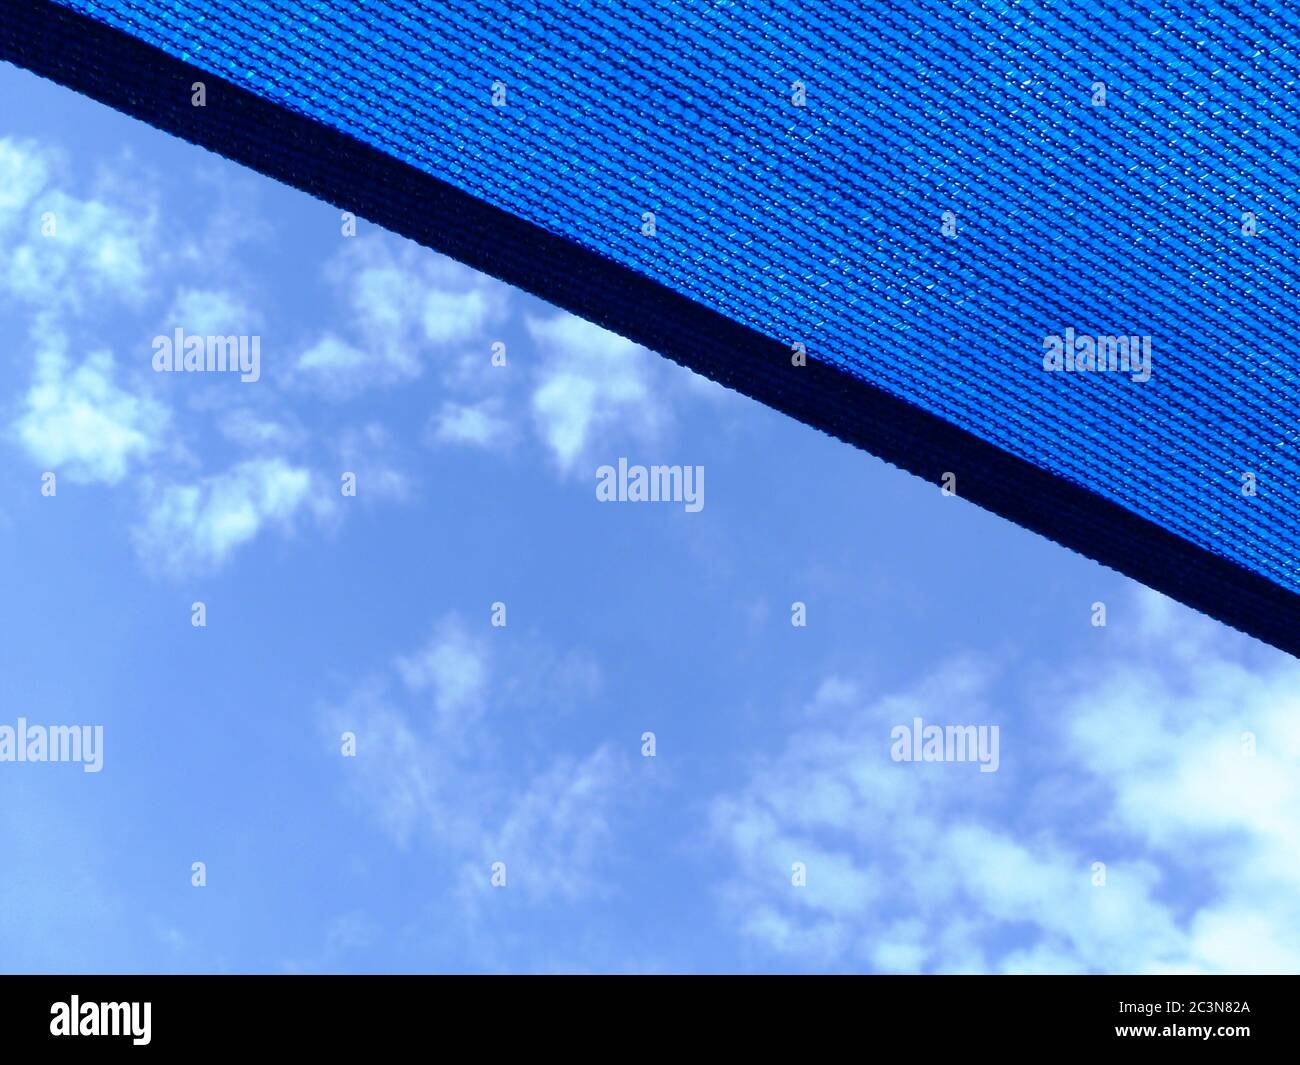 loosely weaved fabric parasol awning. blue sky with clouds. sunny summer day. sun and UV exposure protection concept. medium blue sun proof fabric. Stock Photo